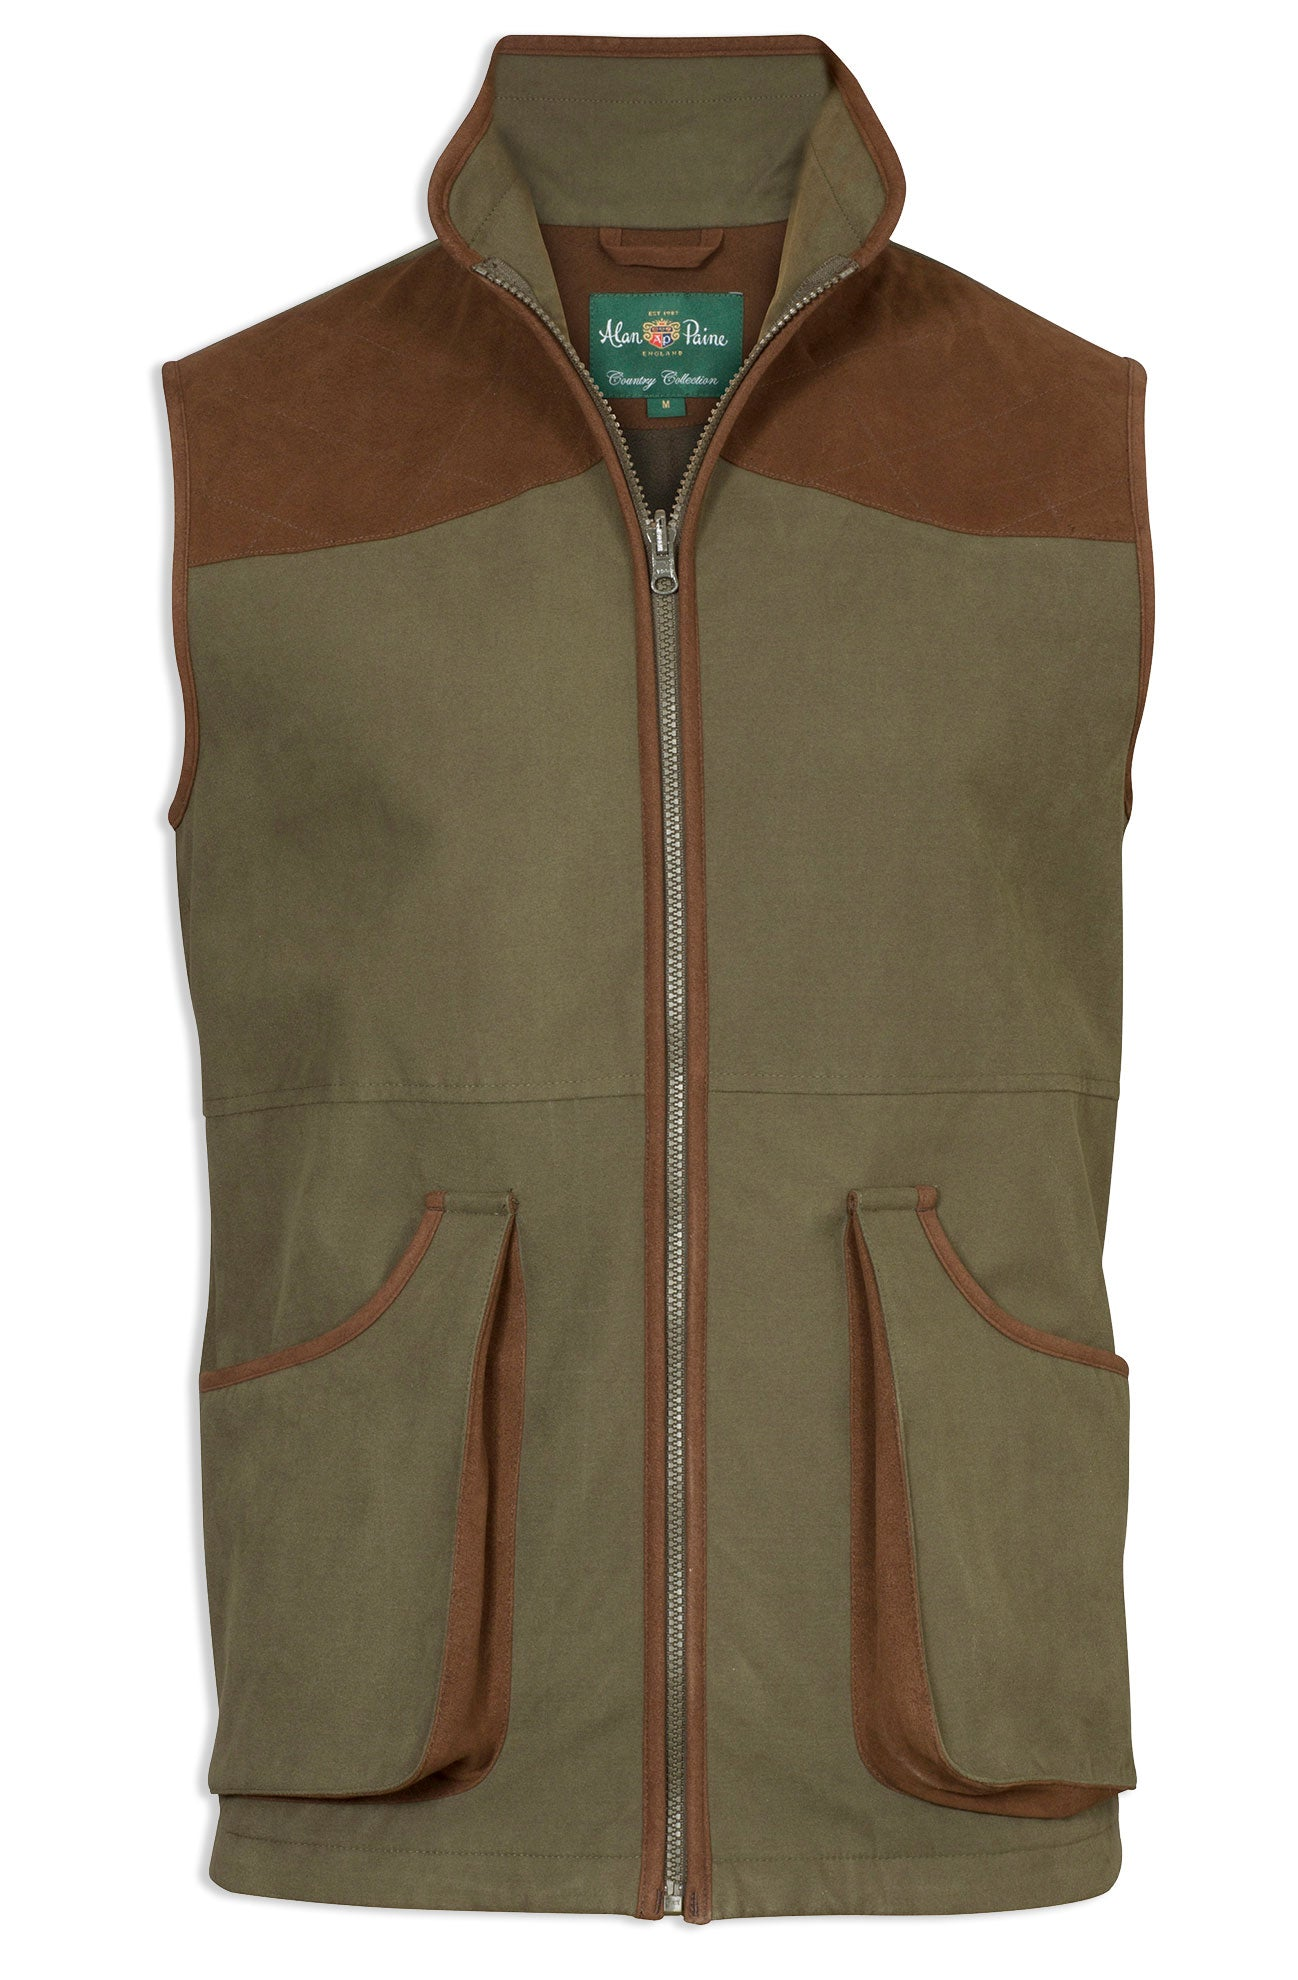 Berwick Men's Waterproof Waistcoat by Alan Paine